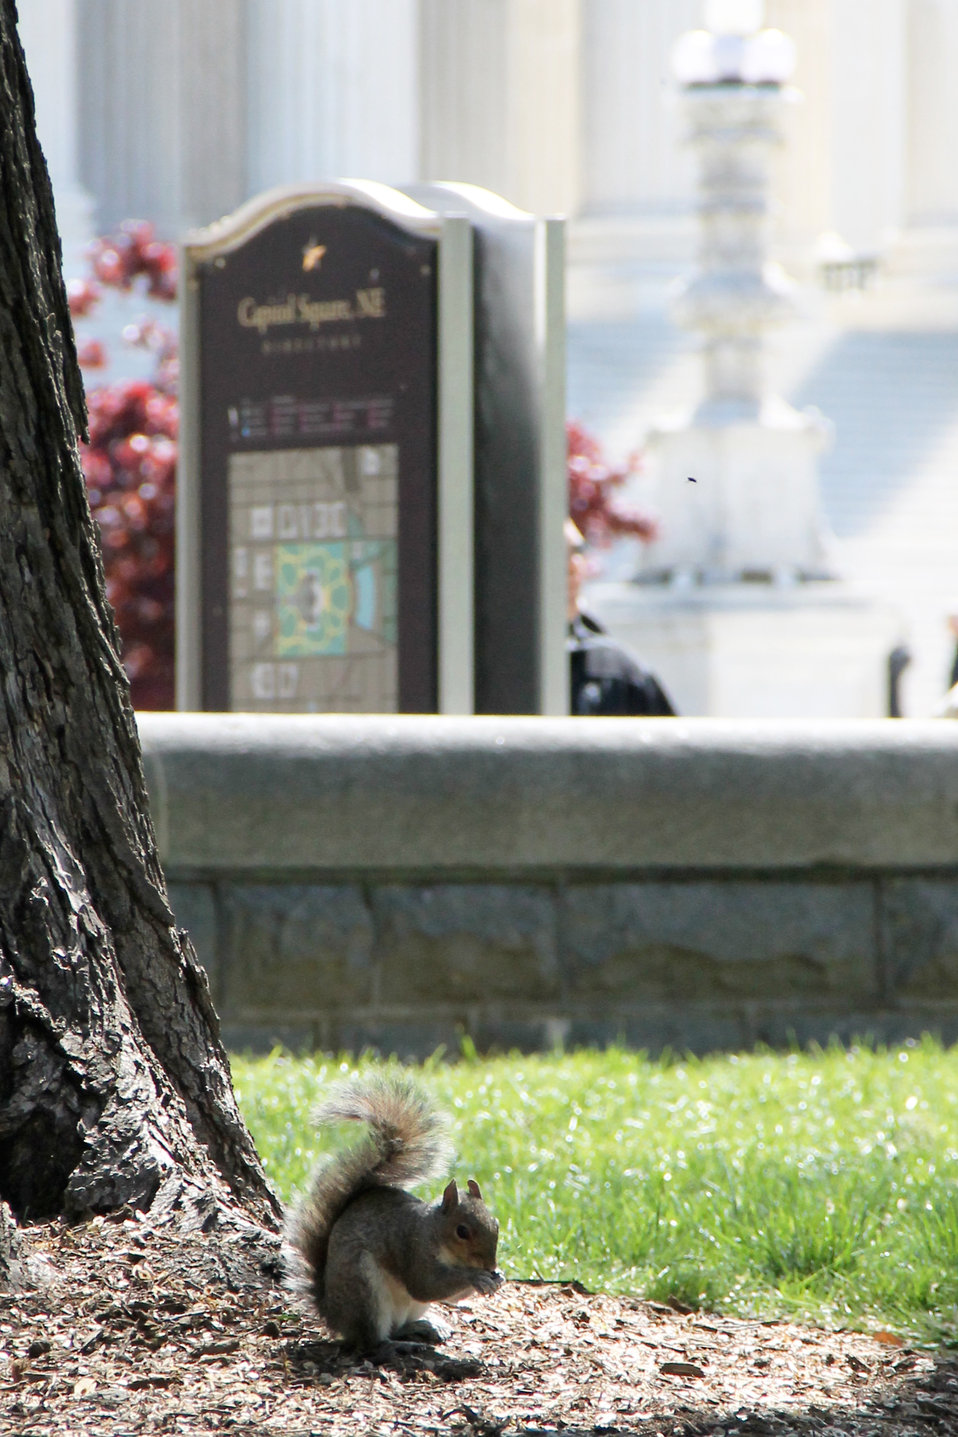 Squirrel on Capitol Square